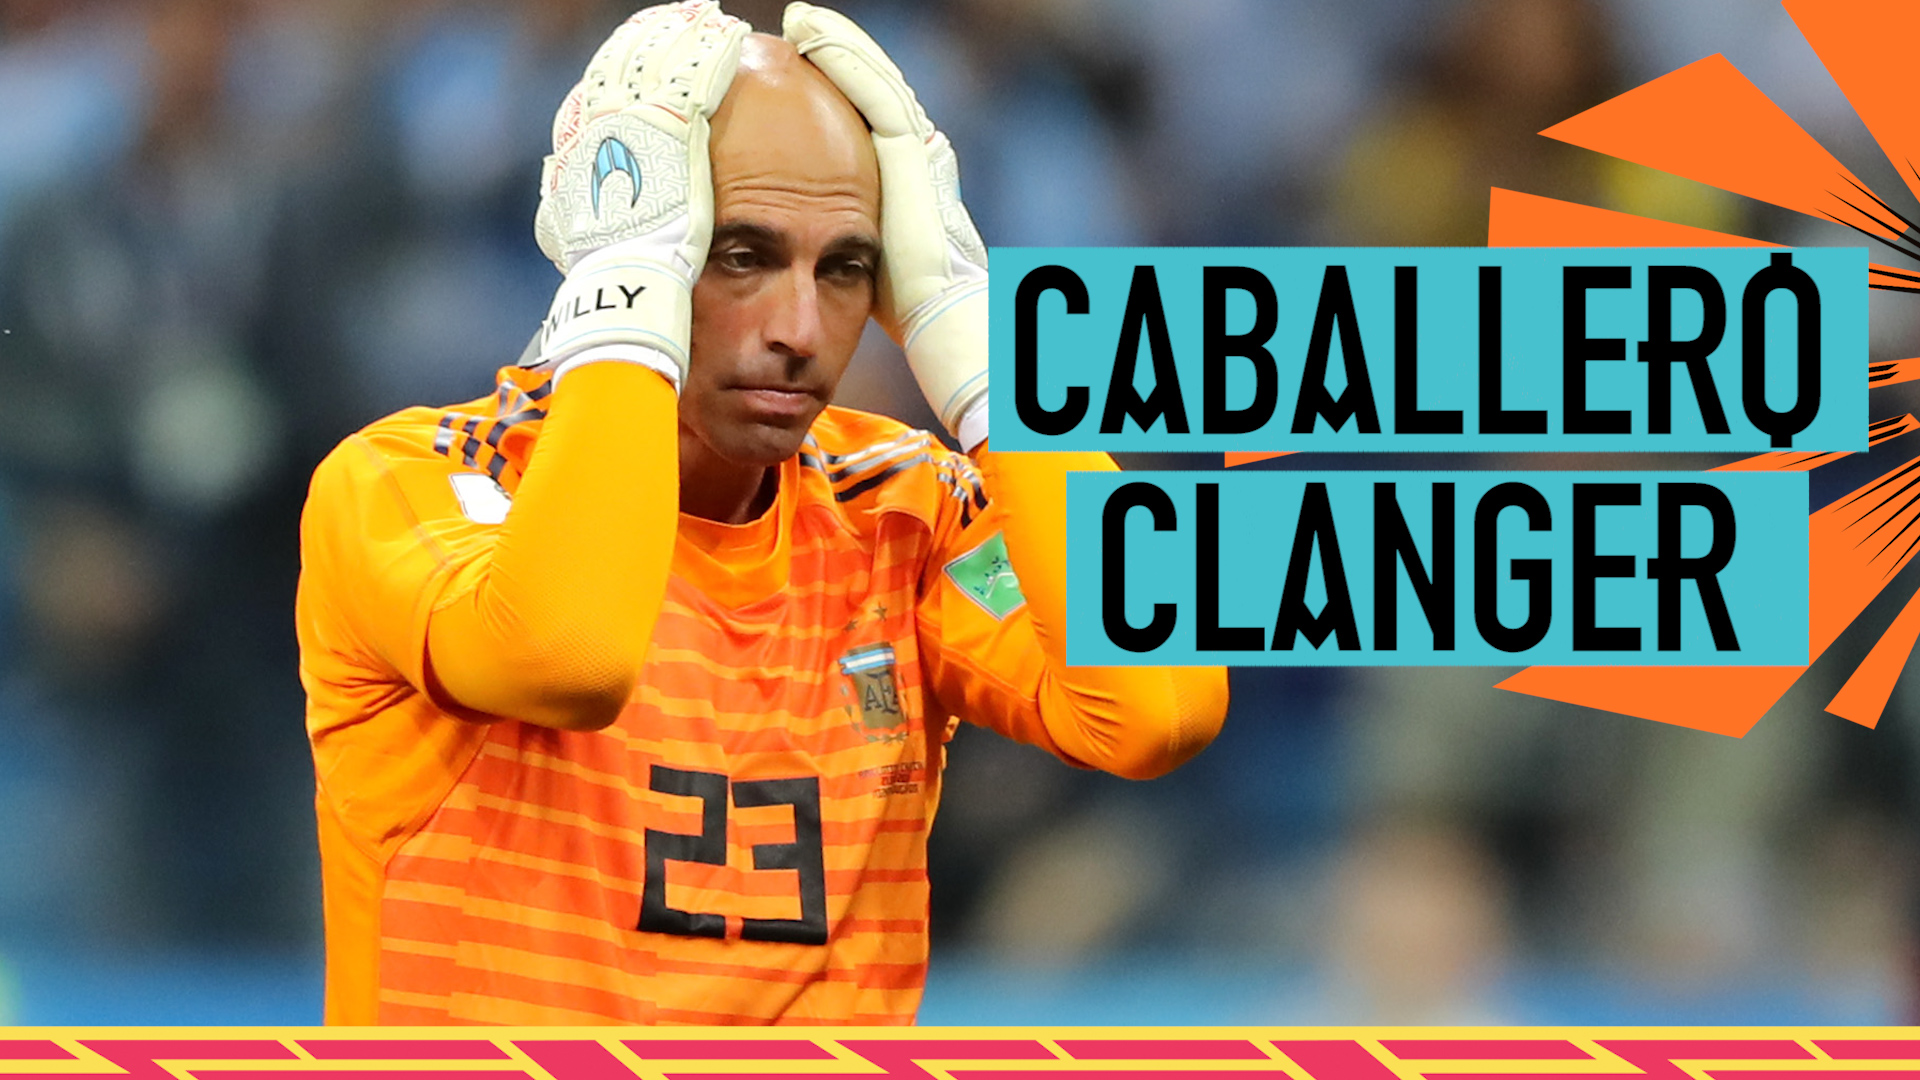 Watch: 'What an awful mistake' - Caballero costs Argentina